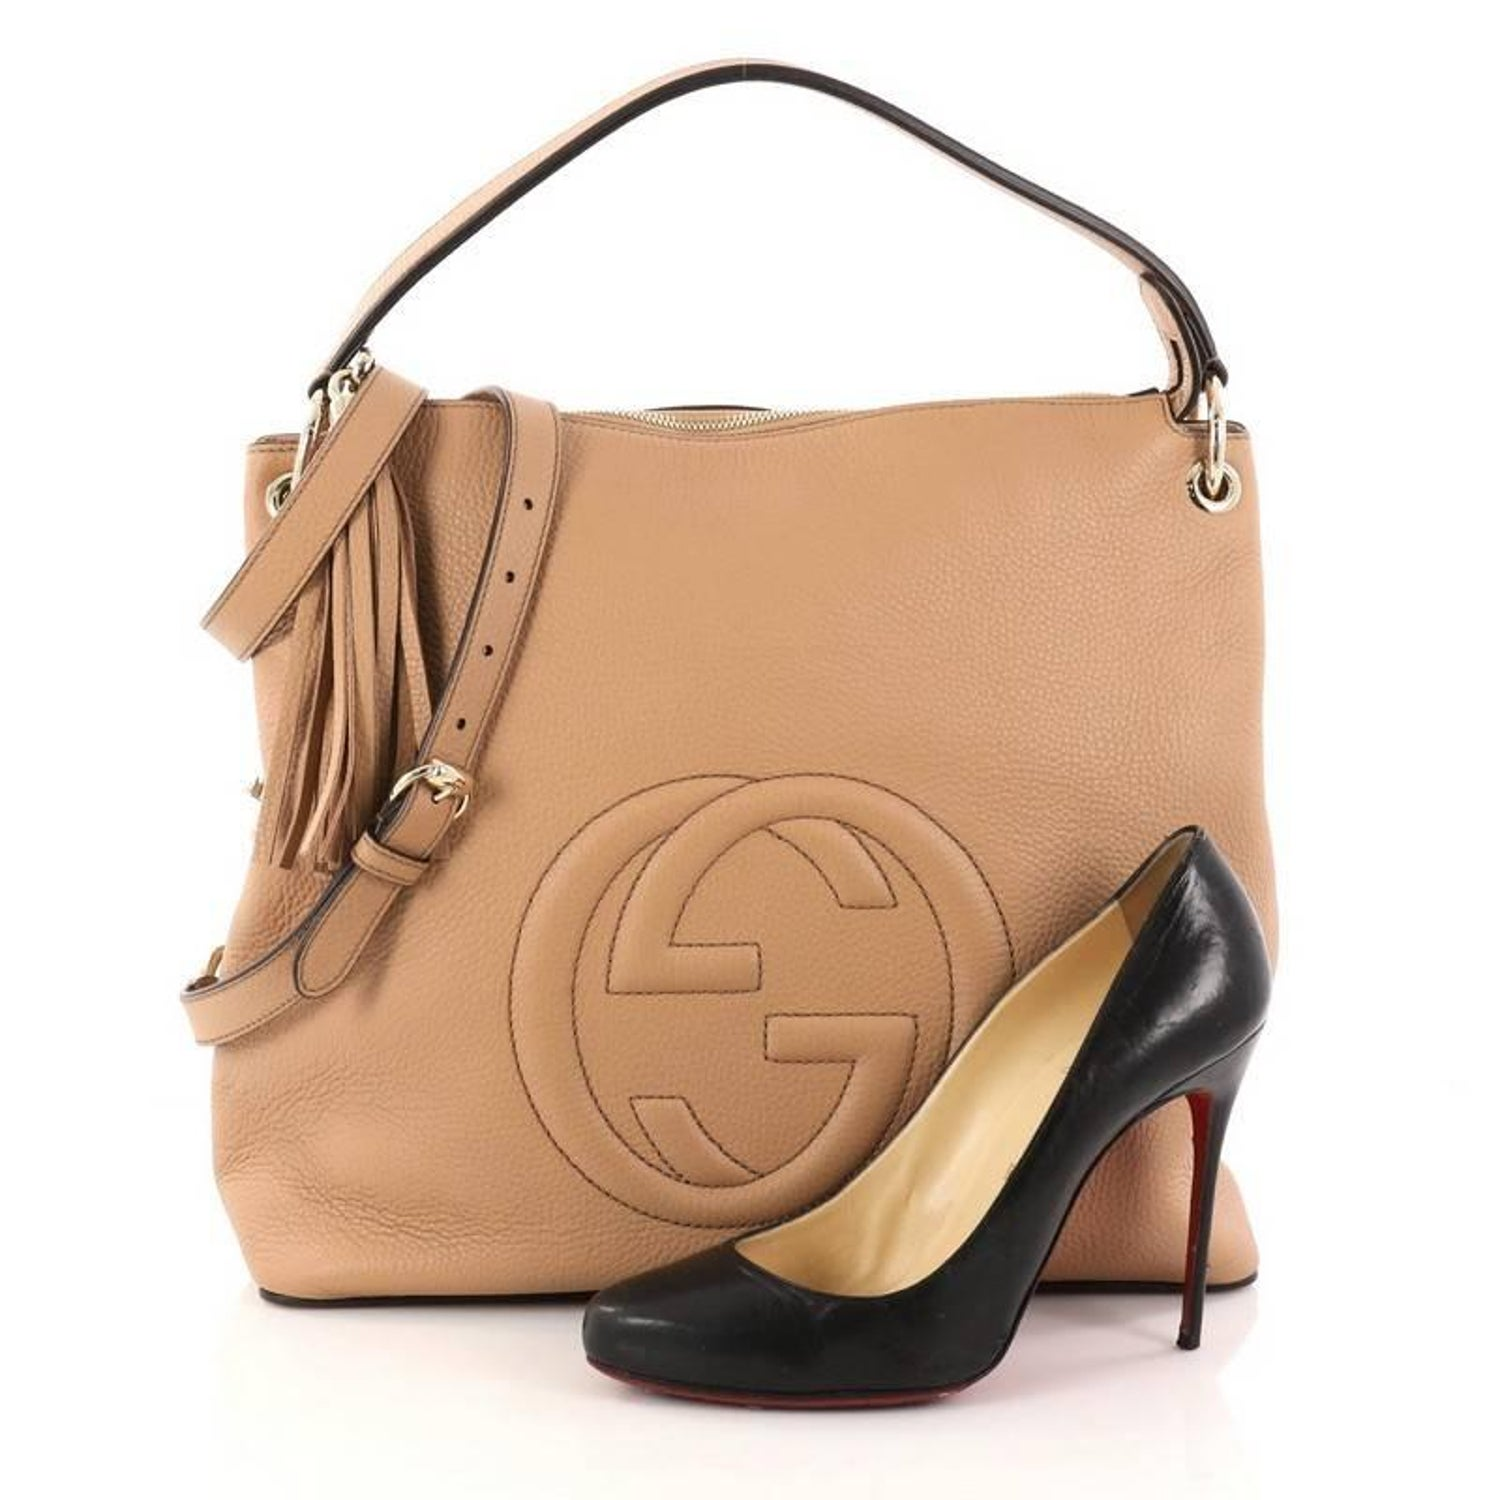 Gucci Soho Convertible Hobo Leather Large At 1stdibs